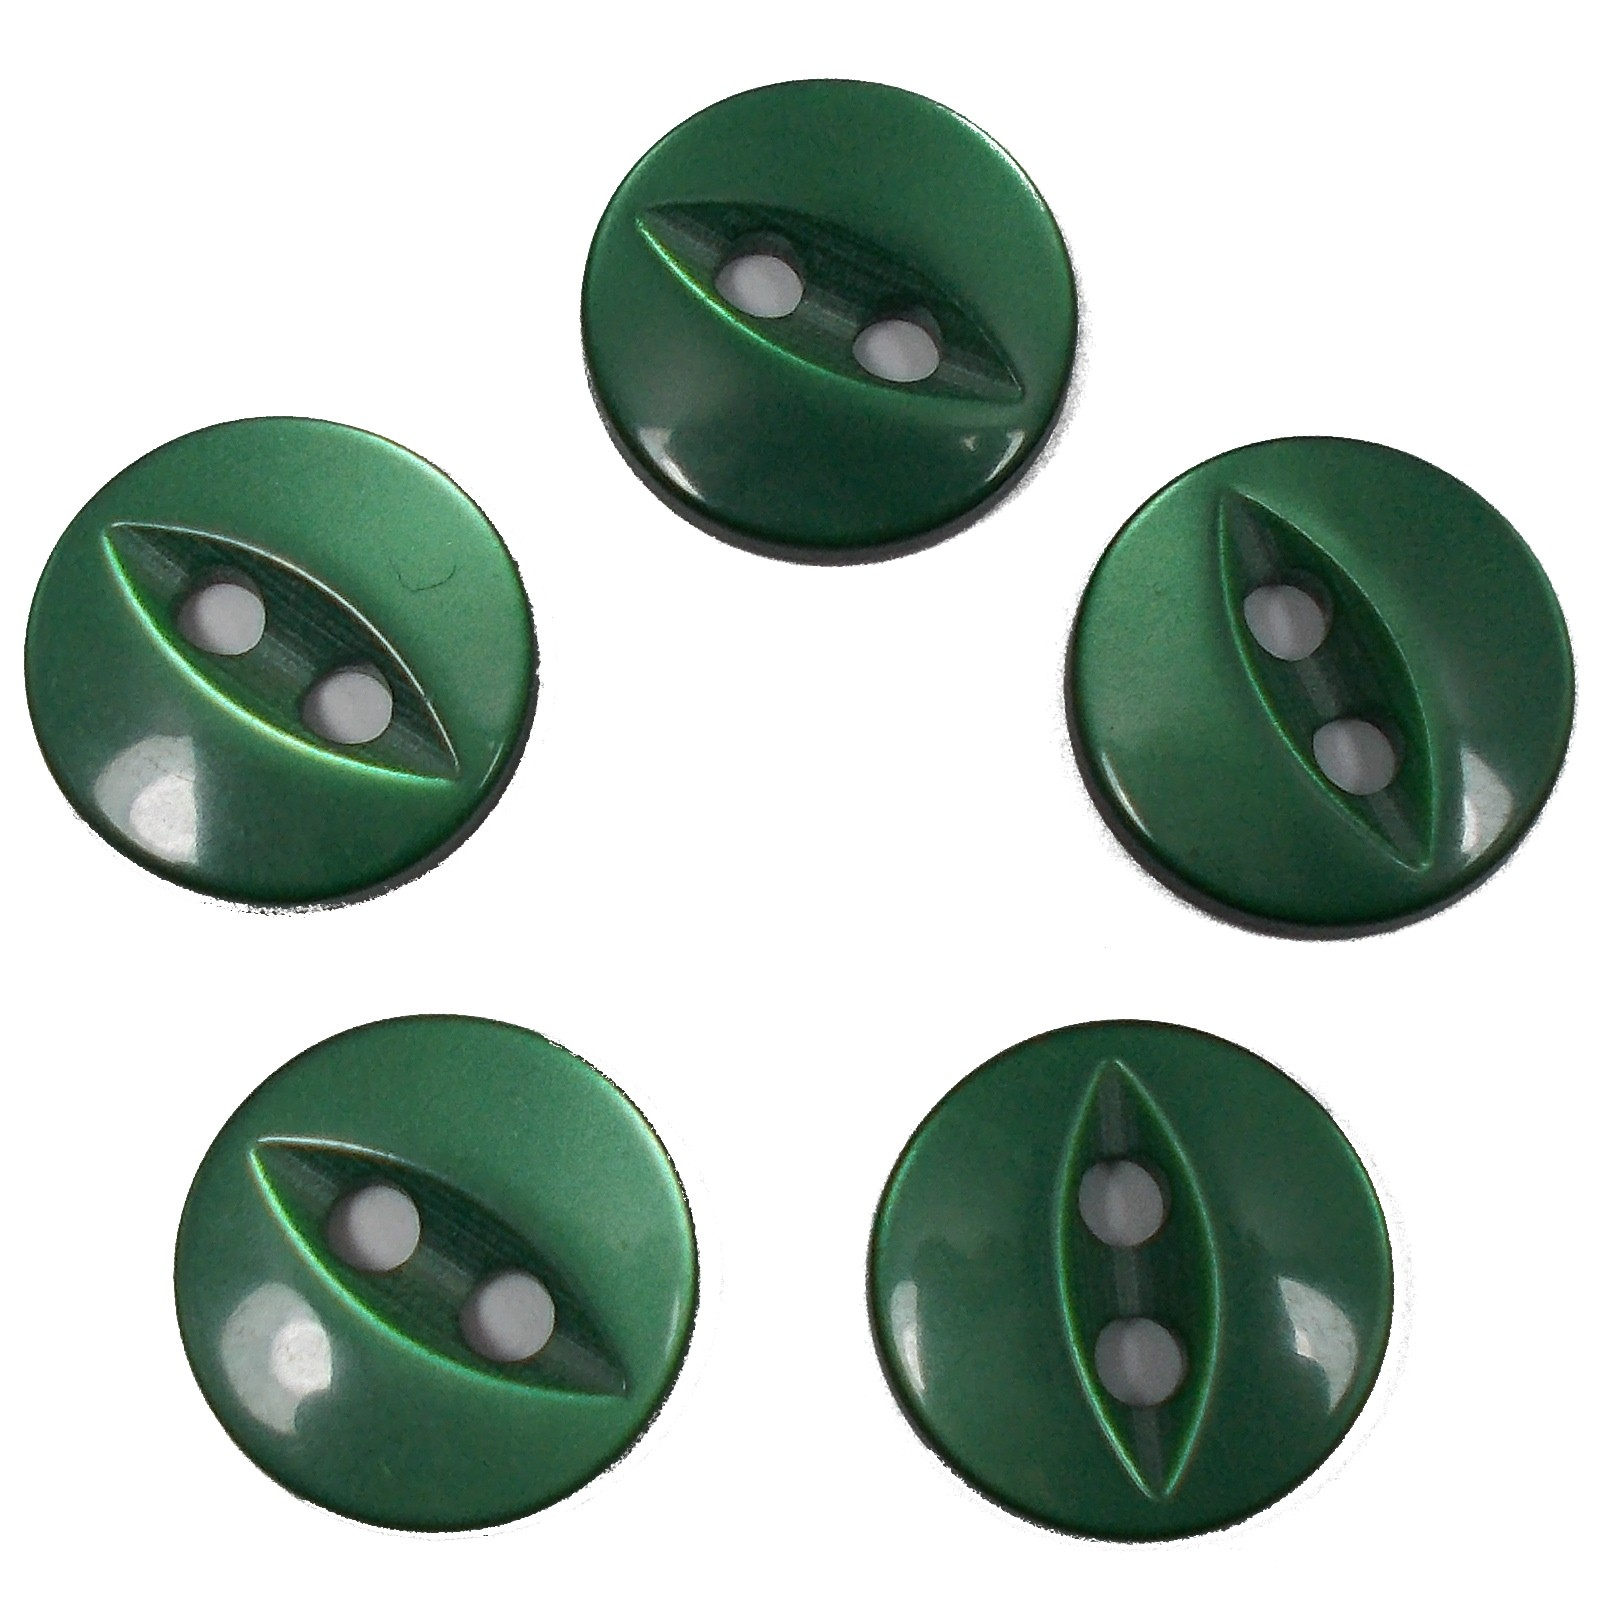 Fisheye Basic Buttons 16mm Green Pack of 5